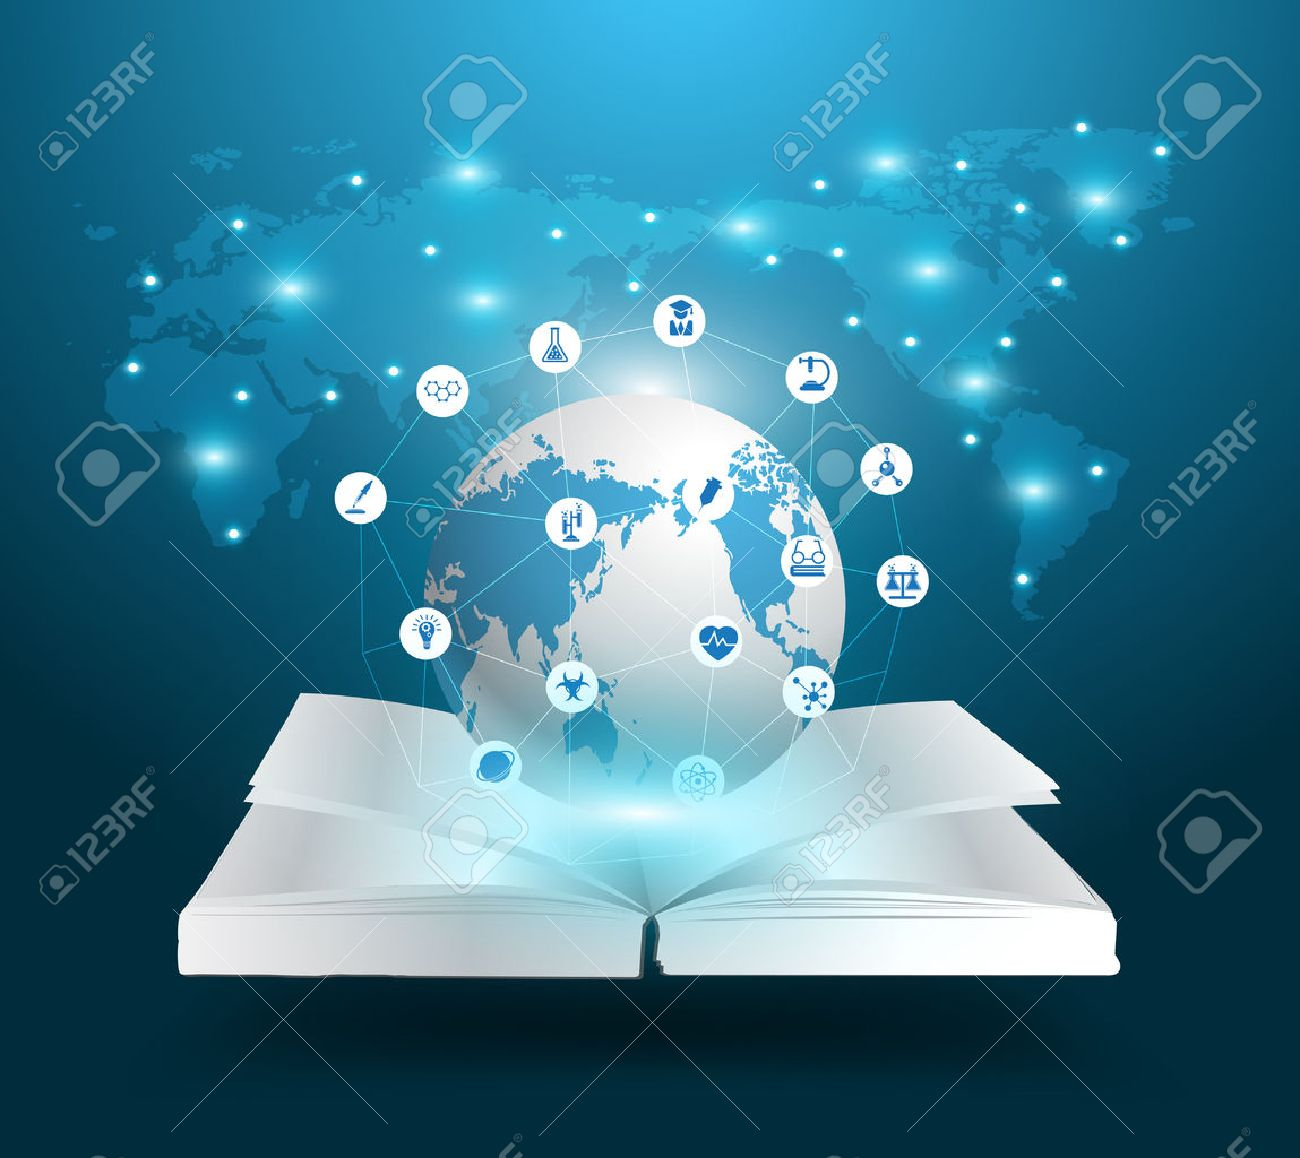 Open book and globe knowledge ideas concept, With education chemistry and science icons, Vector illustration template modern design - 45305038